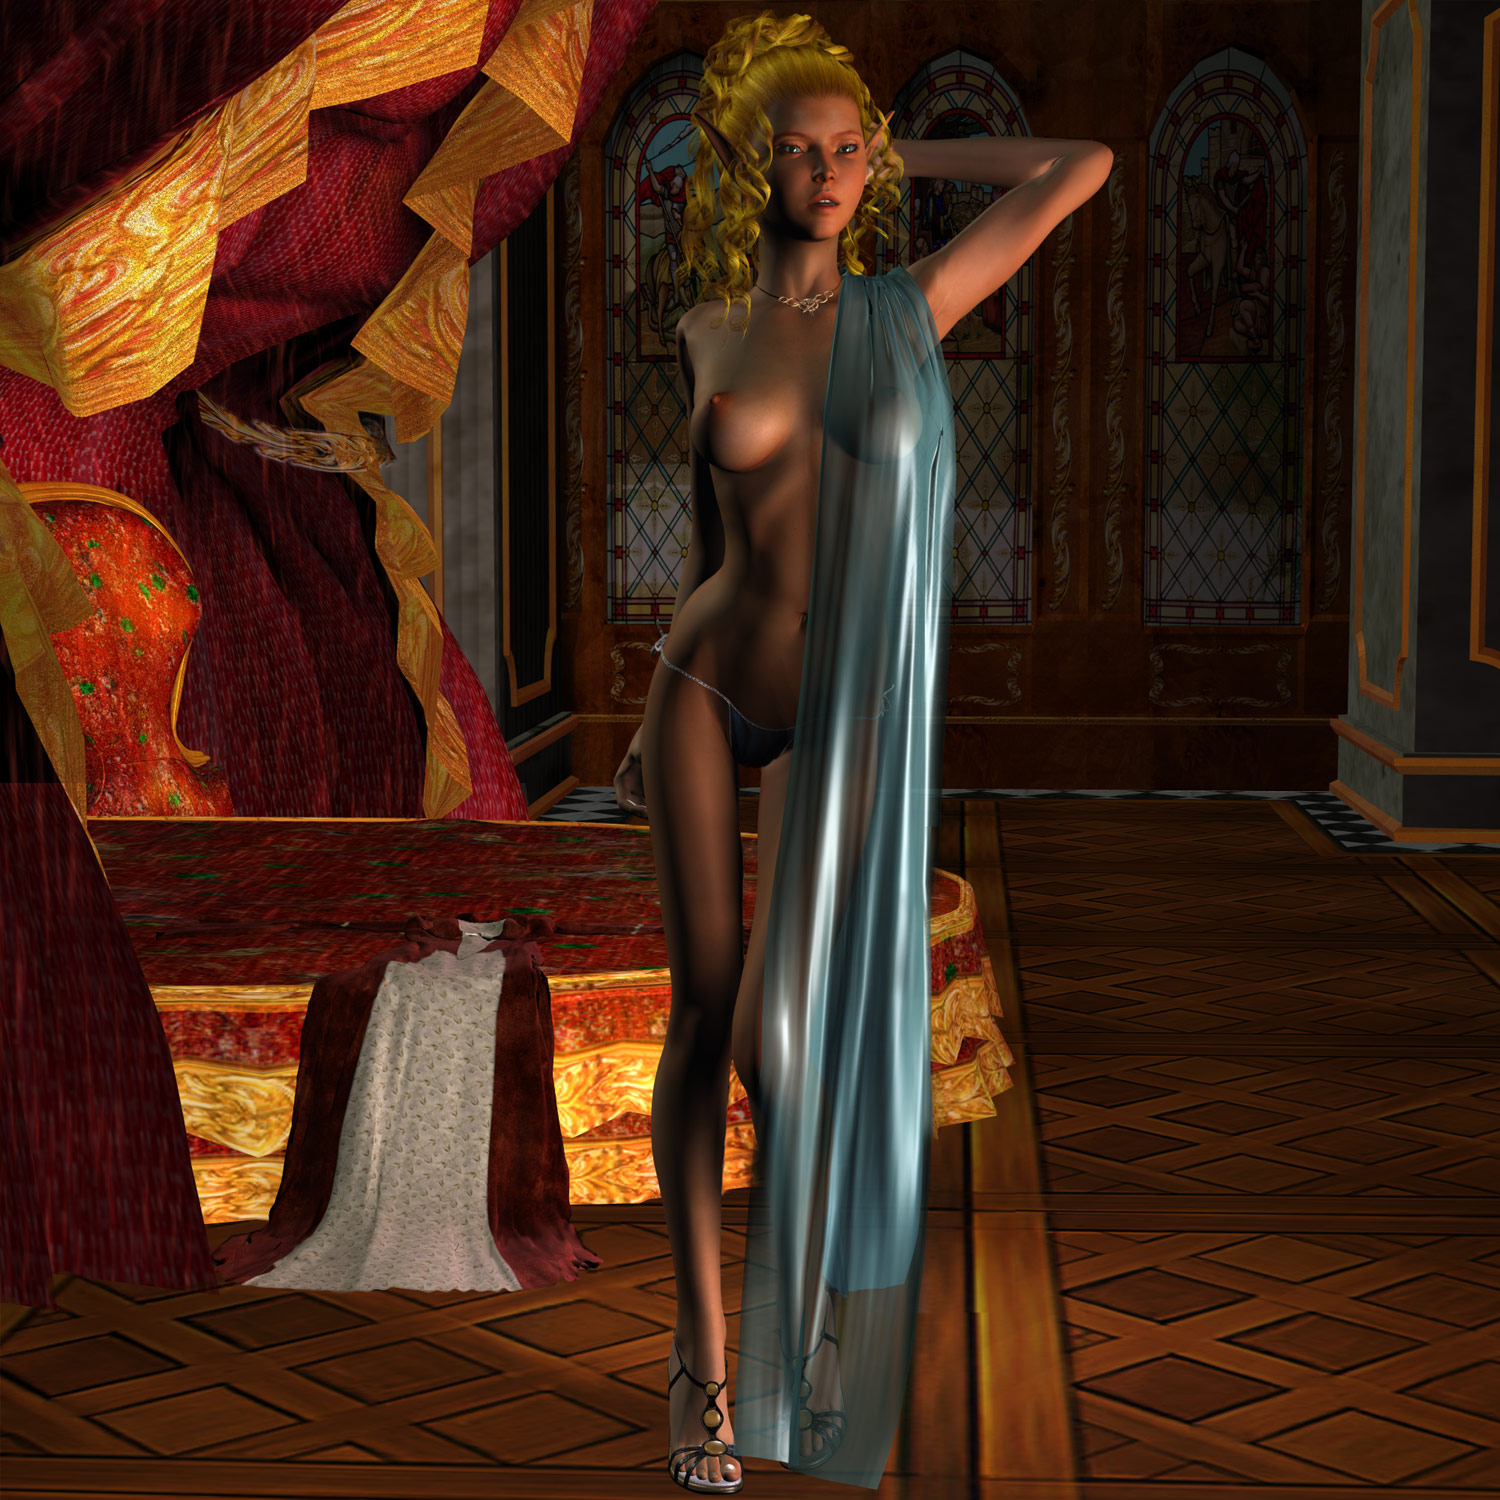 Nude 3d elfs and fairers nude videos